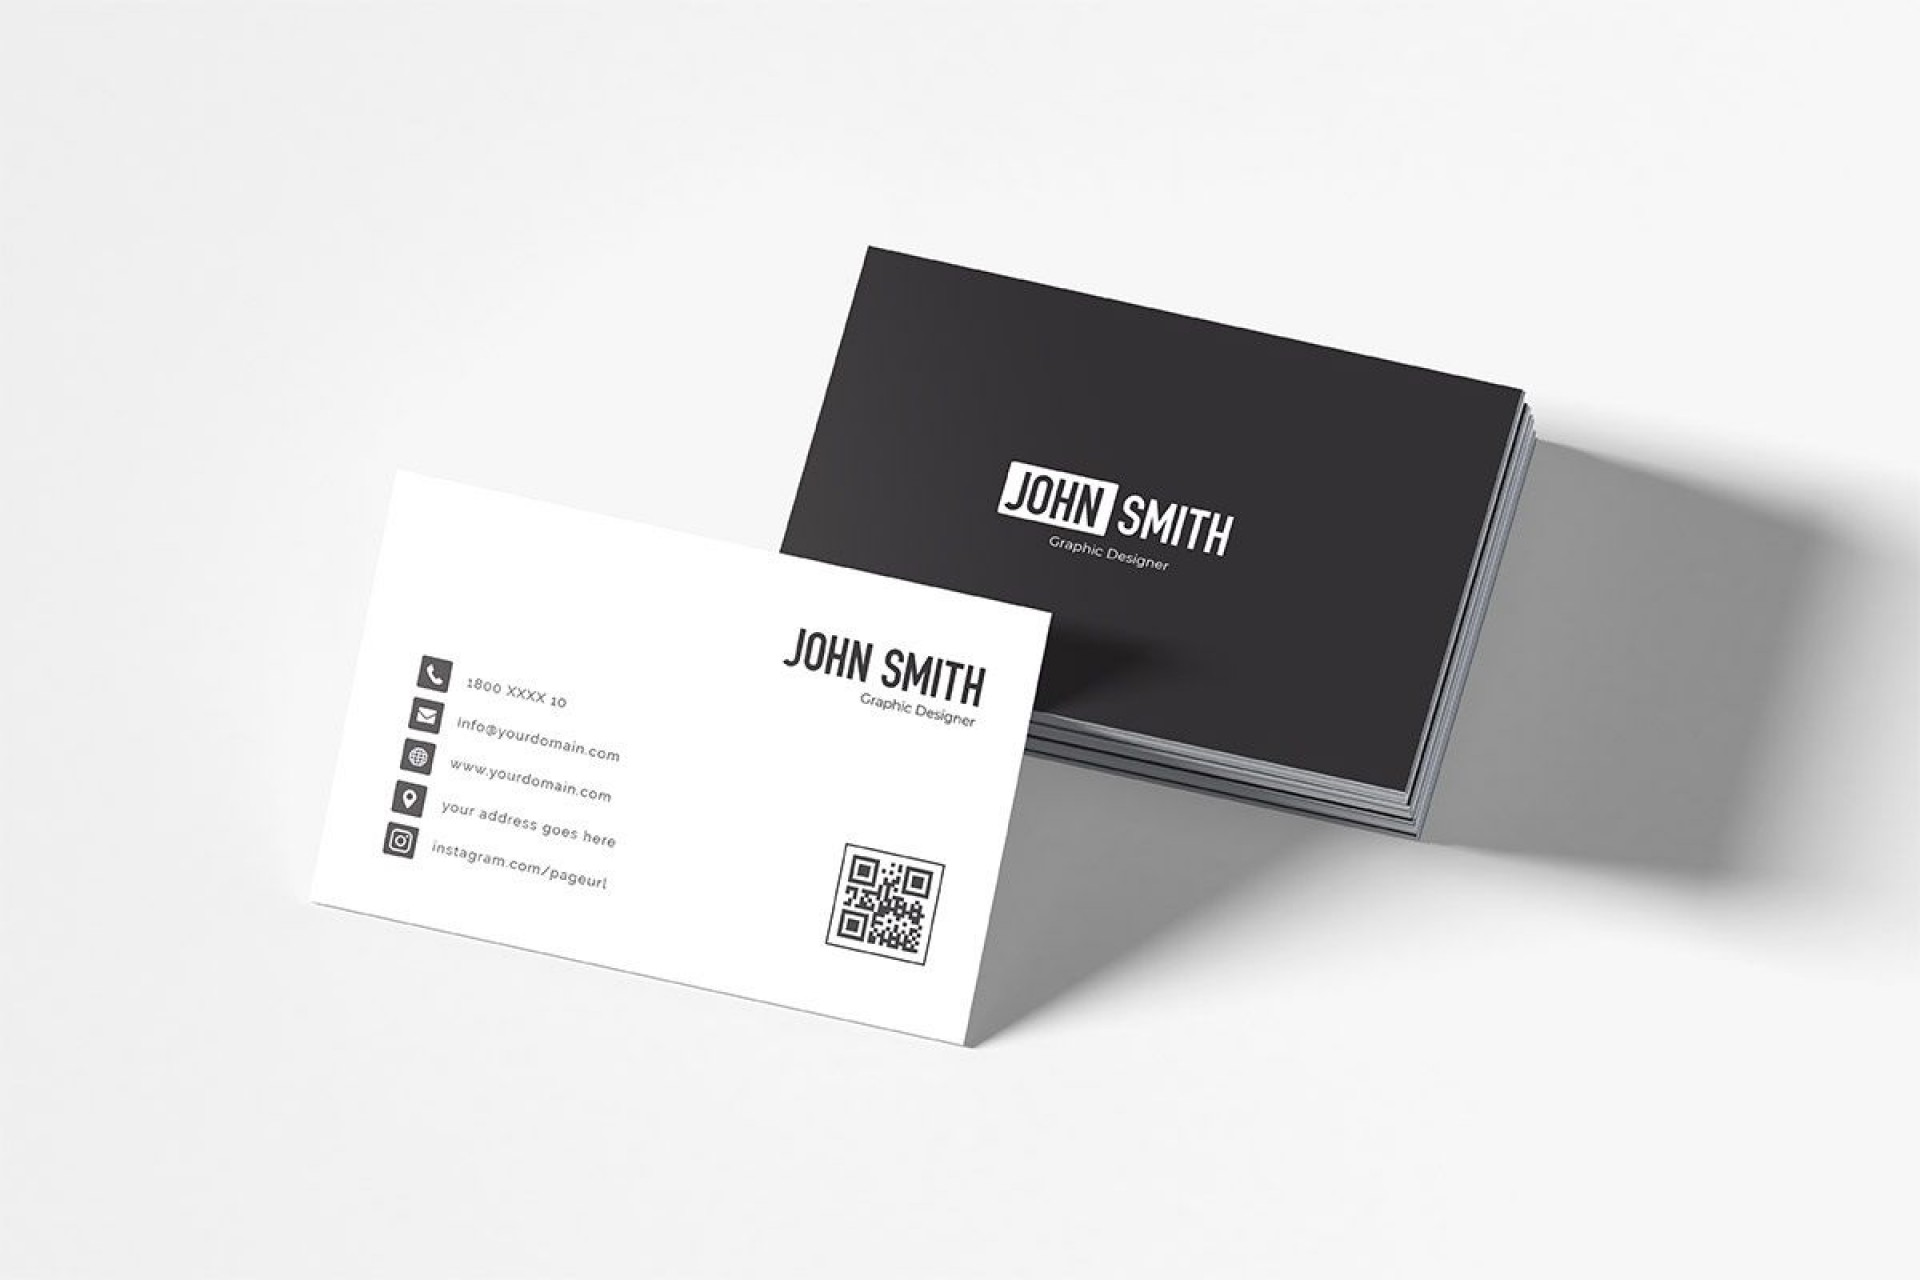 008 Exceptional Minimalist Busines Card Template Psd Free Inspiration 1920